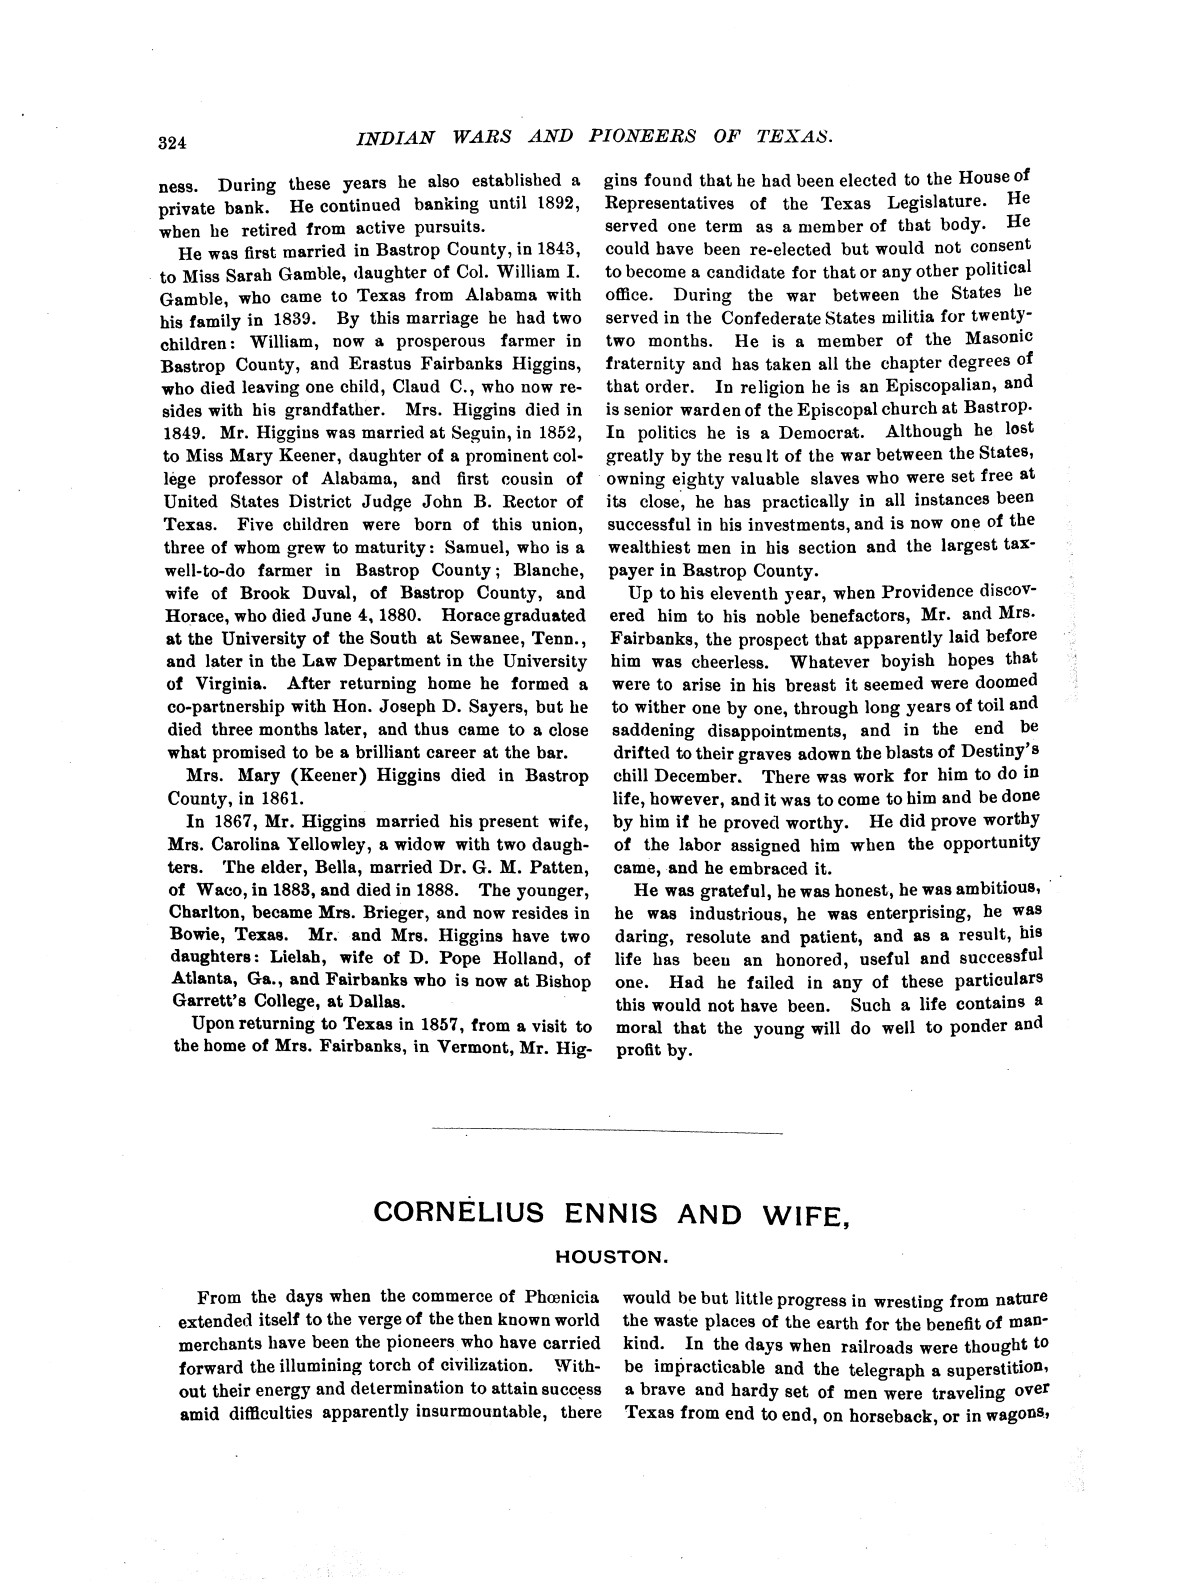 Indian wars and pioneers of Texas / by John Henry Brown.                                                                                                      [Sequence #]: 384 of 894